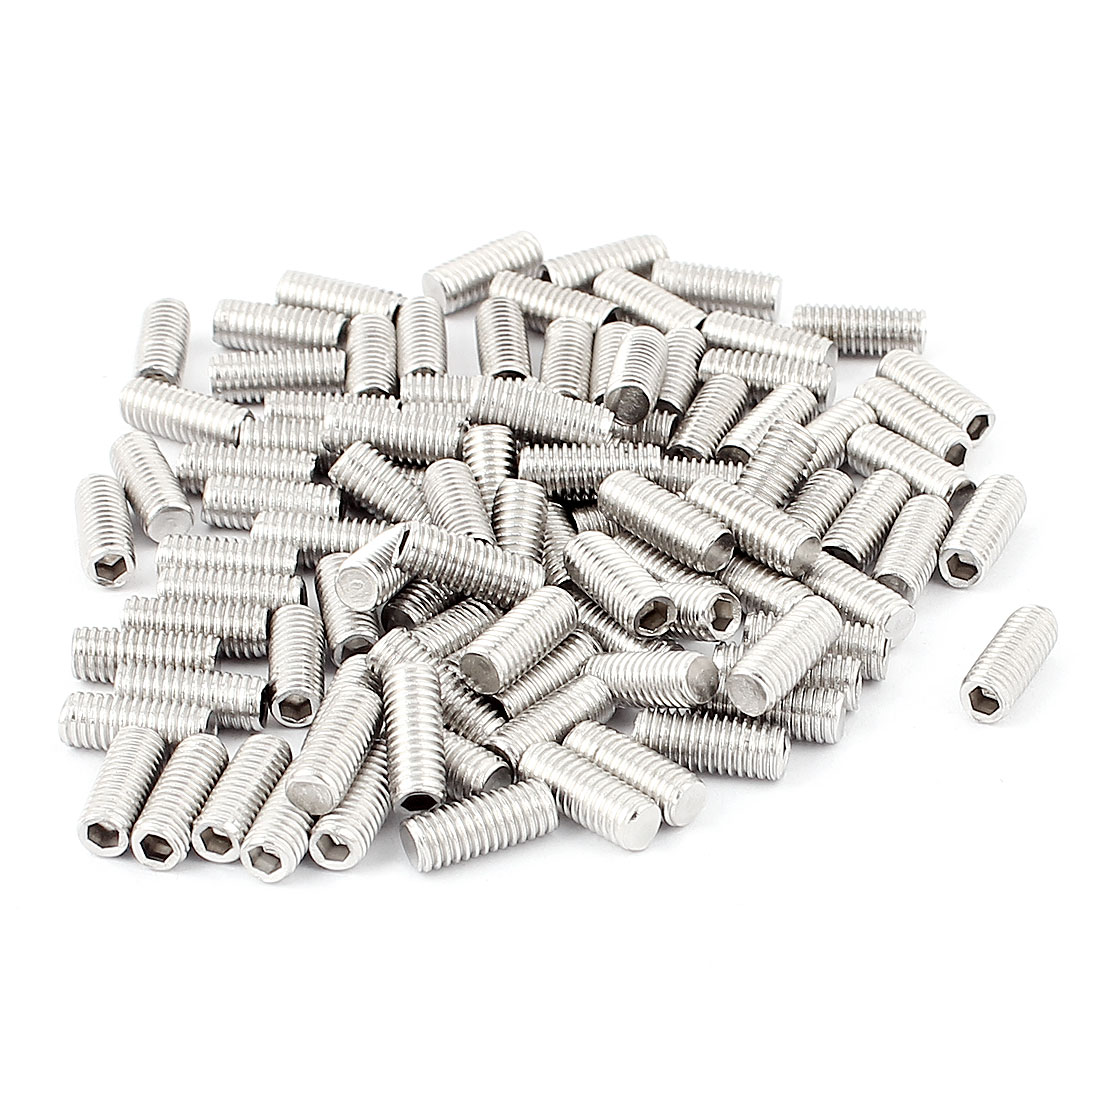 100pcs Stainless Steel M5 Internal Hex Drive Socket Set Grub Screws